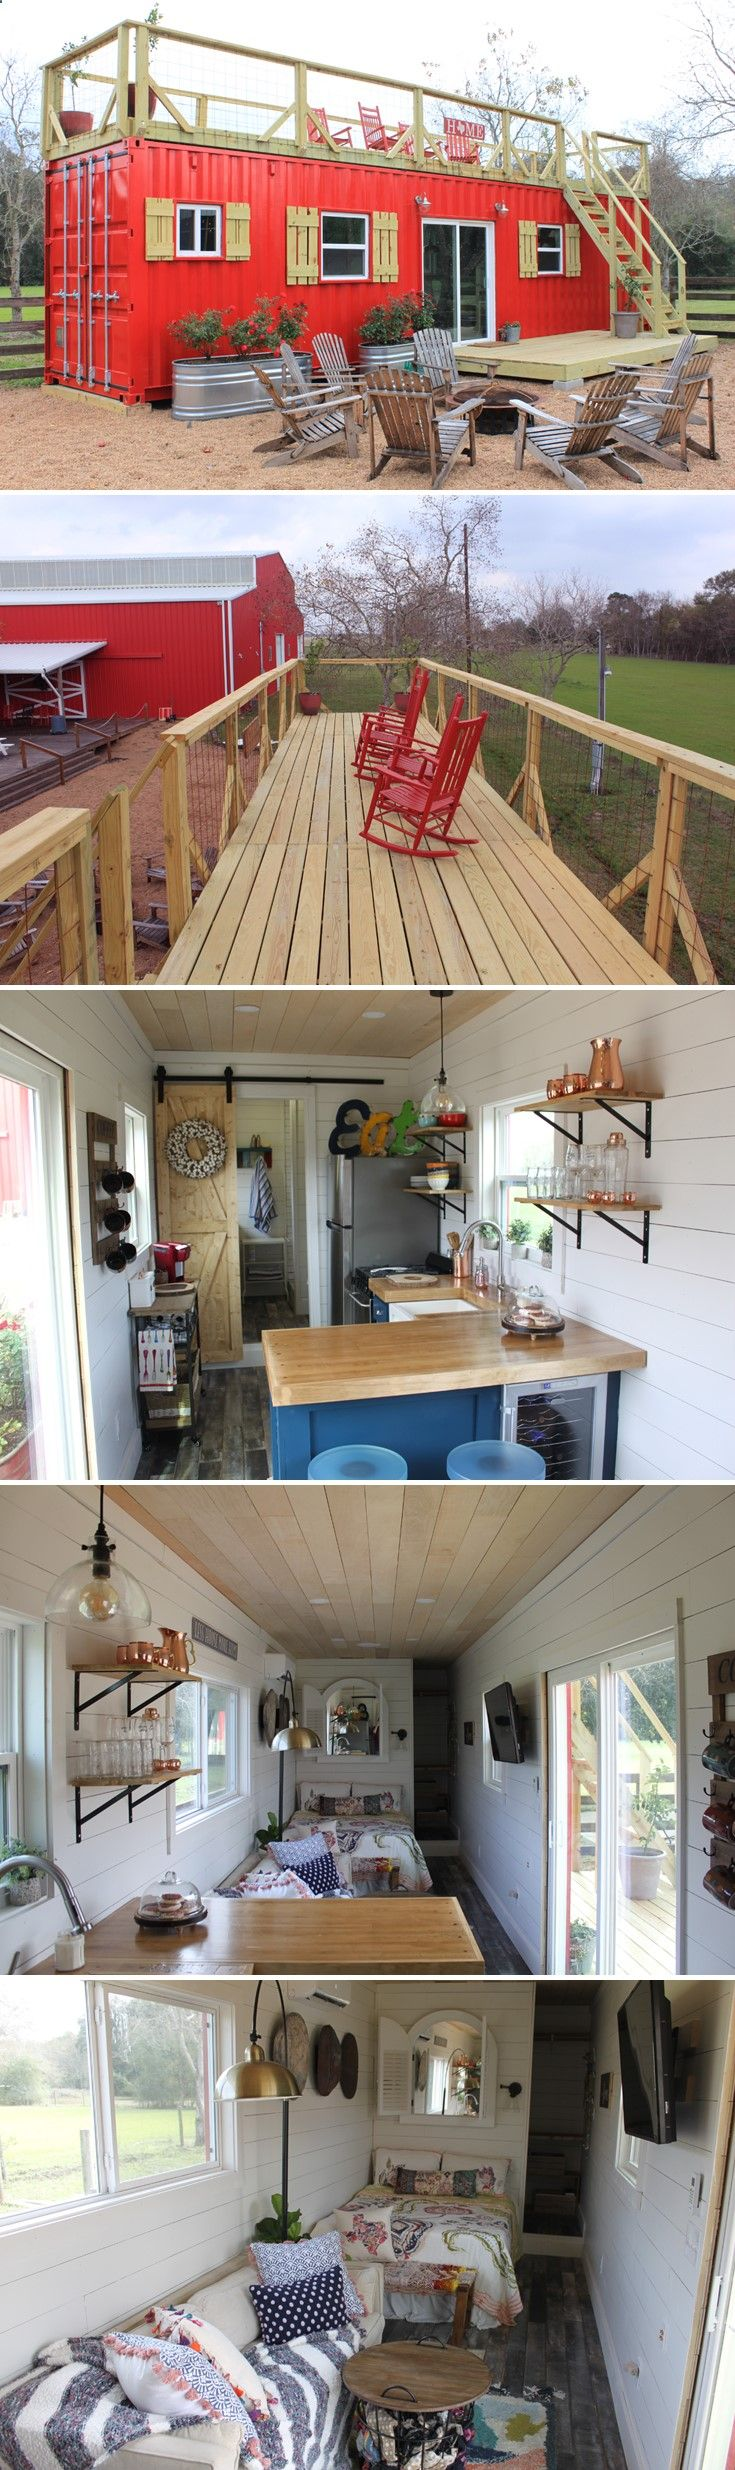 Container House - A 40 shipping container tiny house built by Backcountry Containers, located outside Houston, Texas. The home was featured on Tiny House, Big Living! Who Else Wants Simple Step-By-Step Plans To Design And Build A Container Home From Scratch?